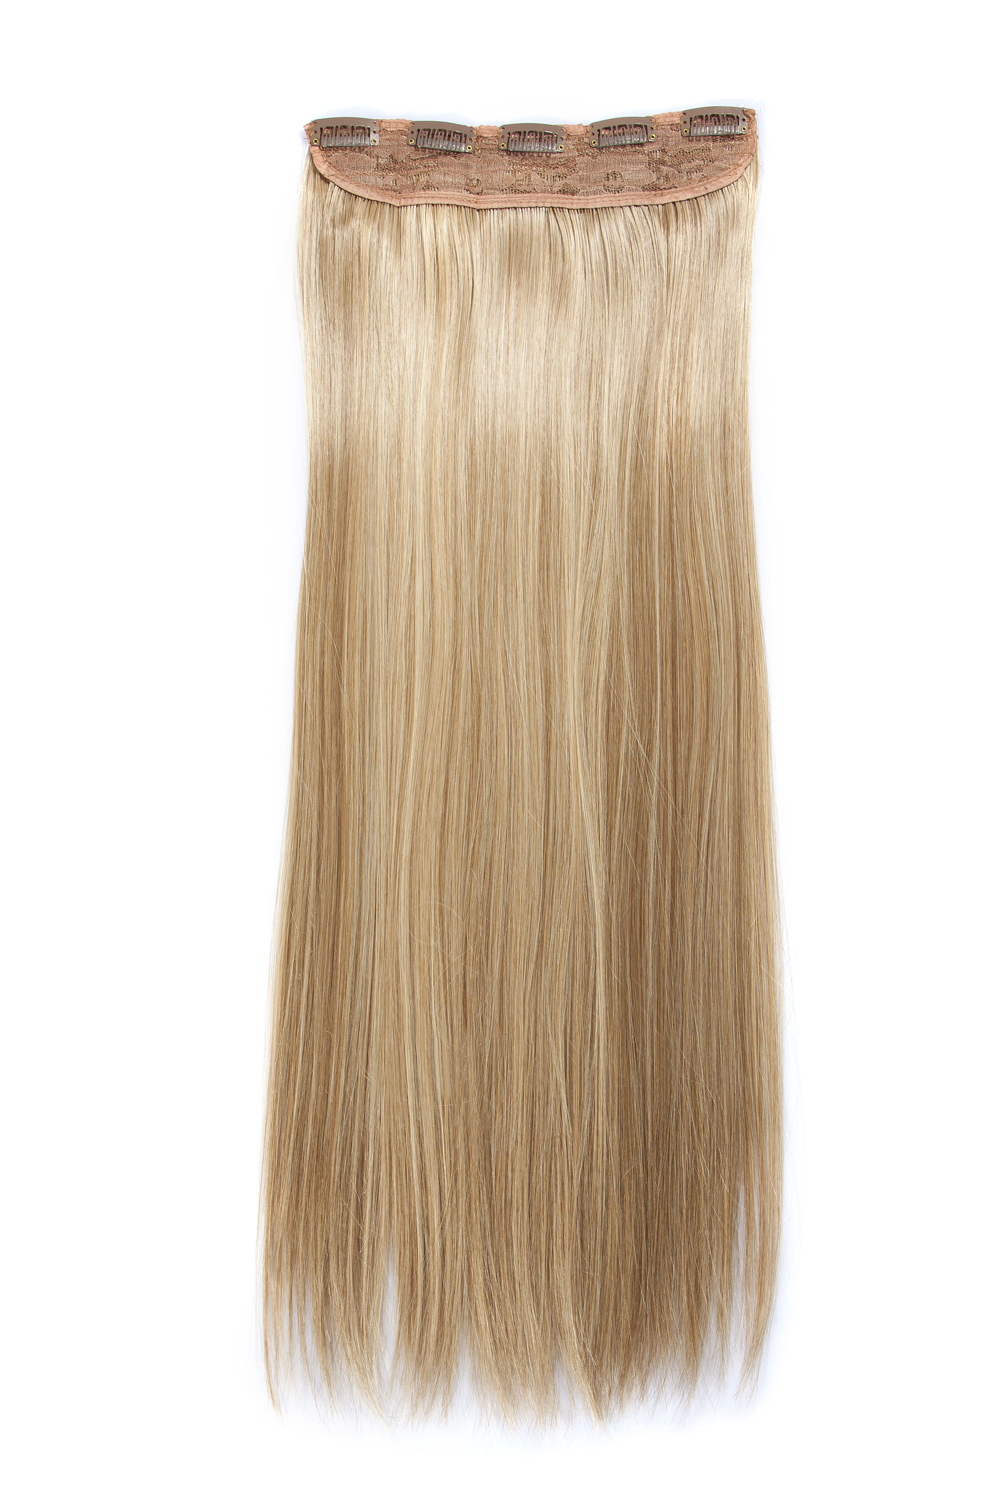 High-temperature Resistance Fibre Flaxen Hair Extension Women Hairpiece Accessories 62cm Length 145g